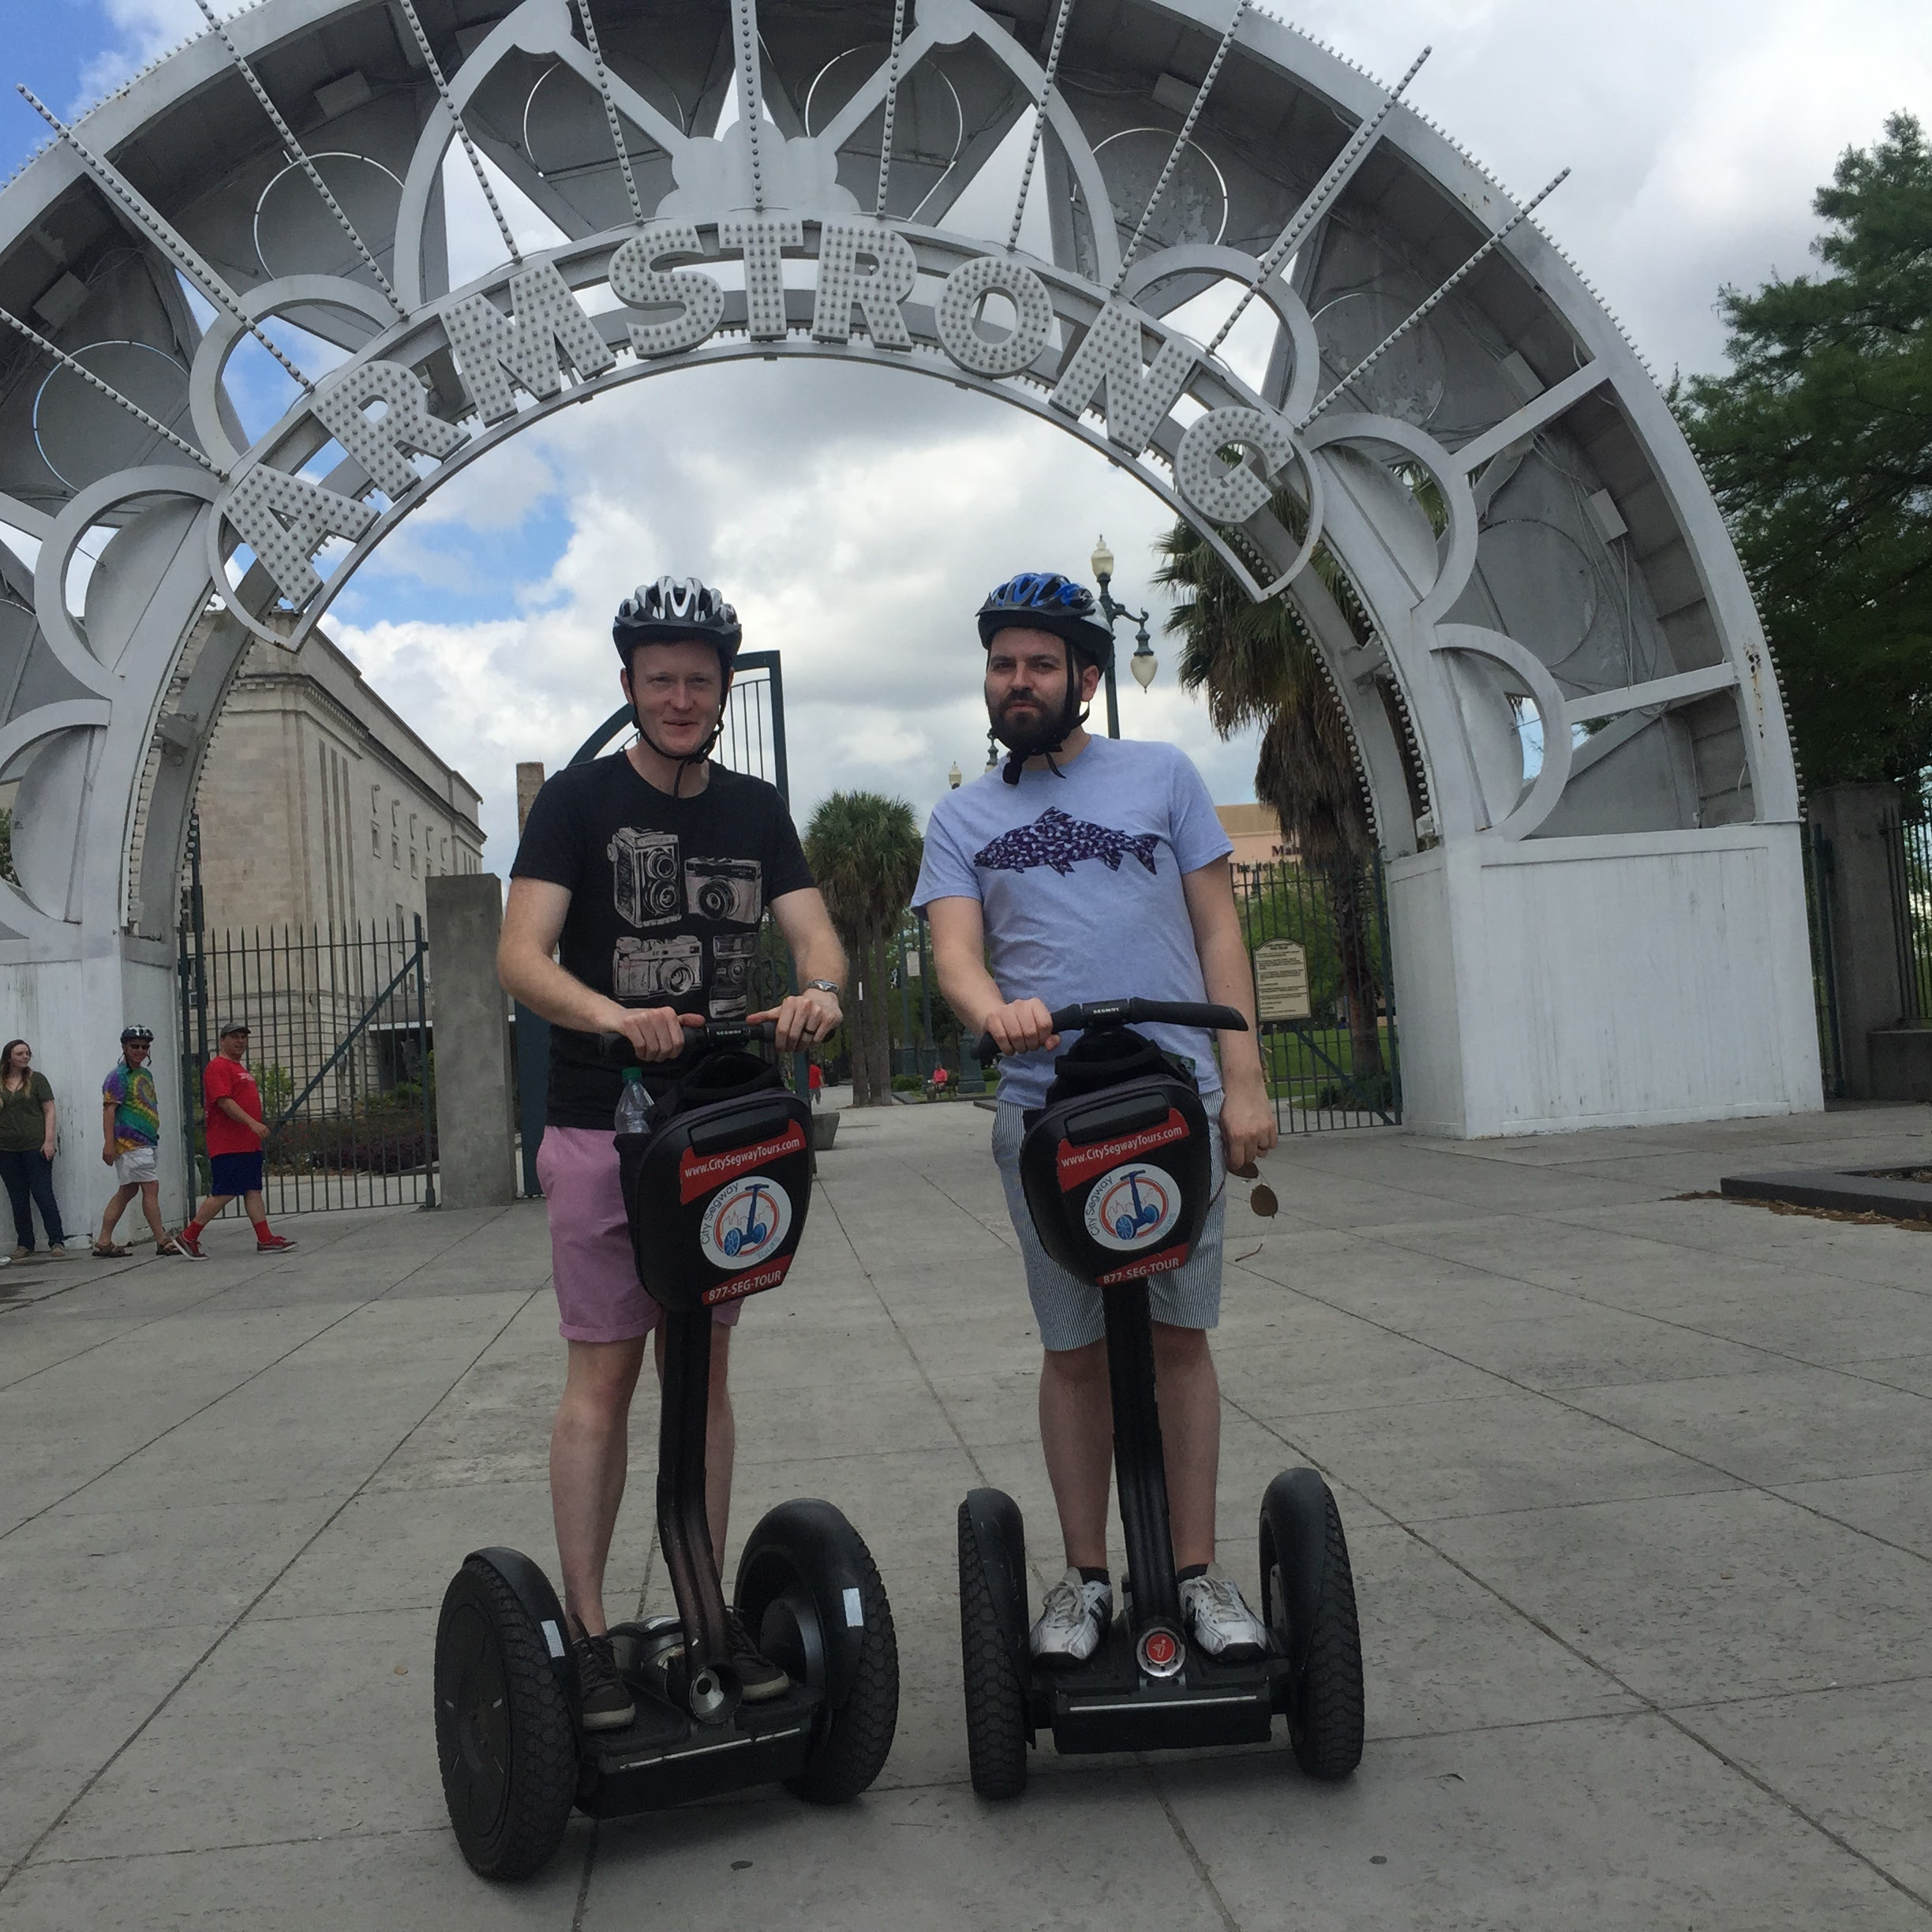 New Orleans was another great trip for Segway